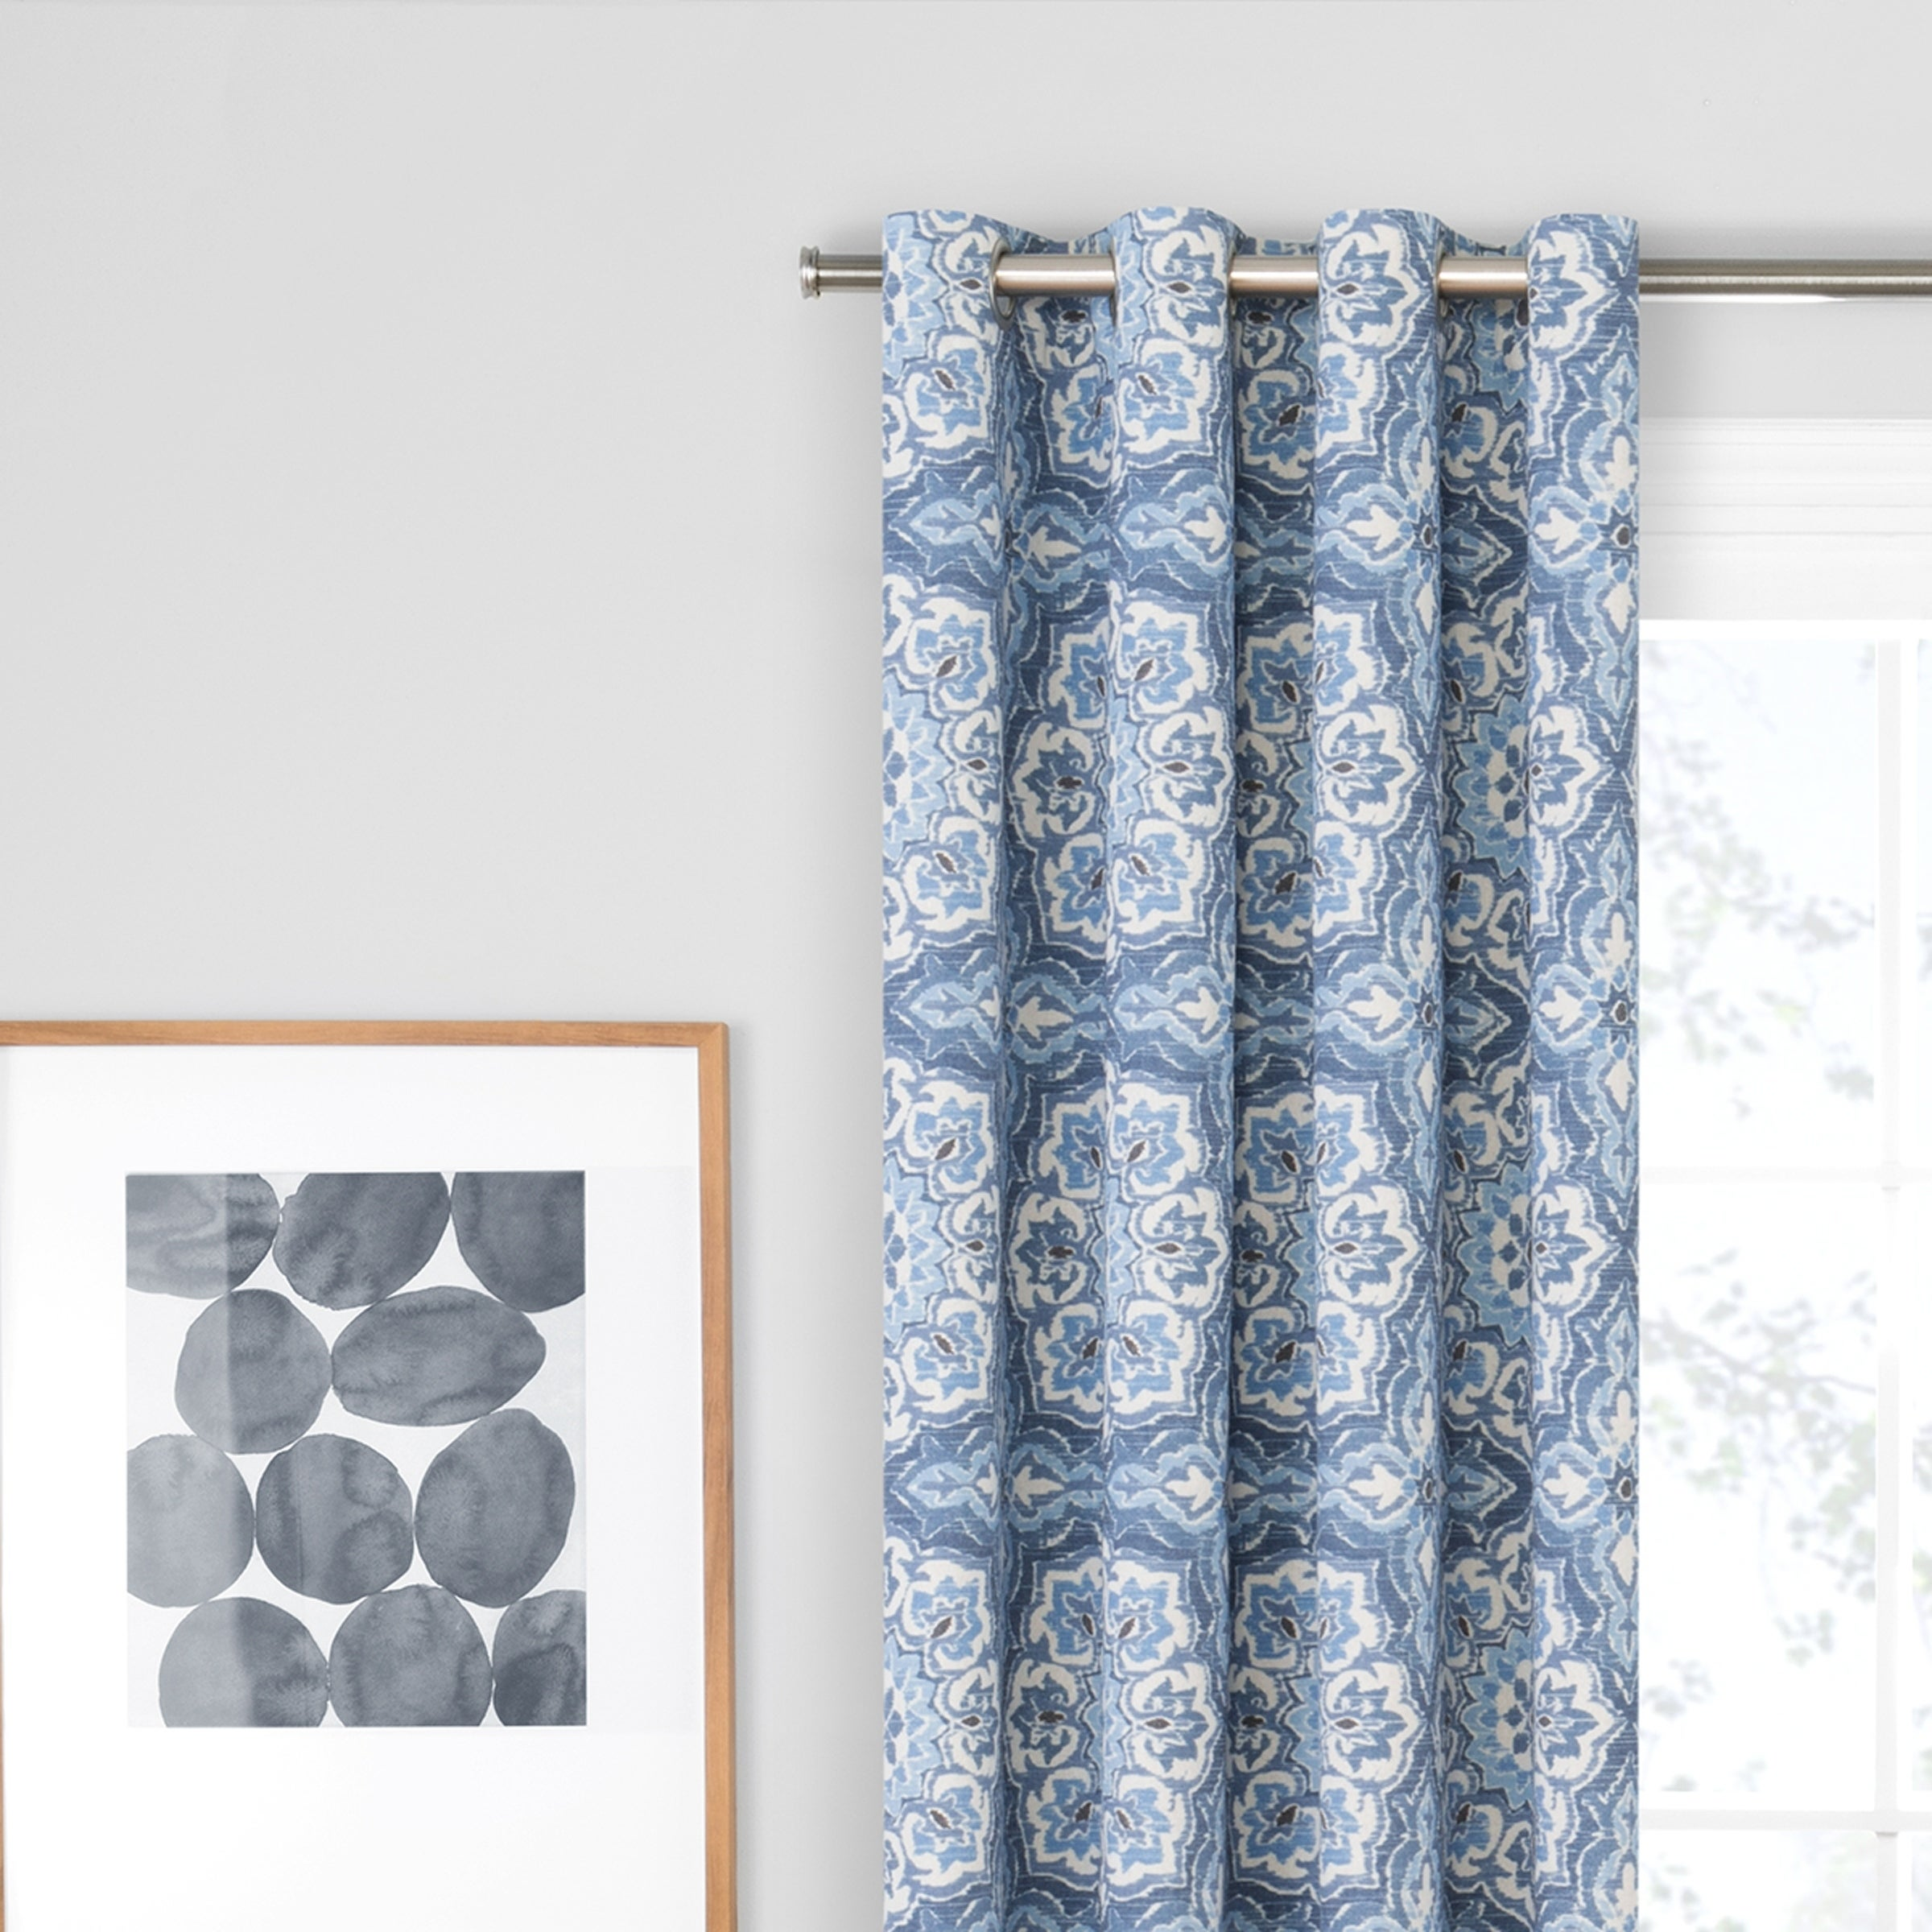 pair curtains lush products lushdecor com edward trellis navy decor blue curtain window set darkening room